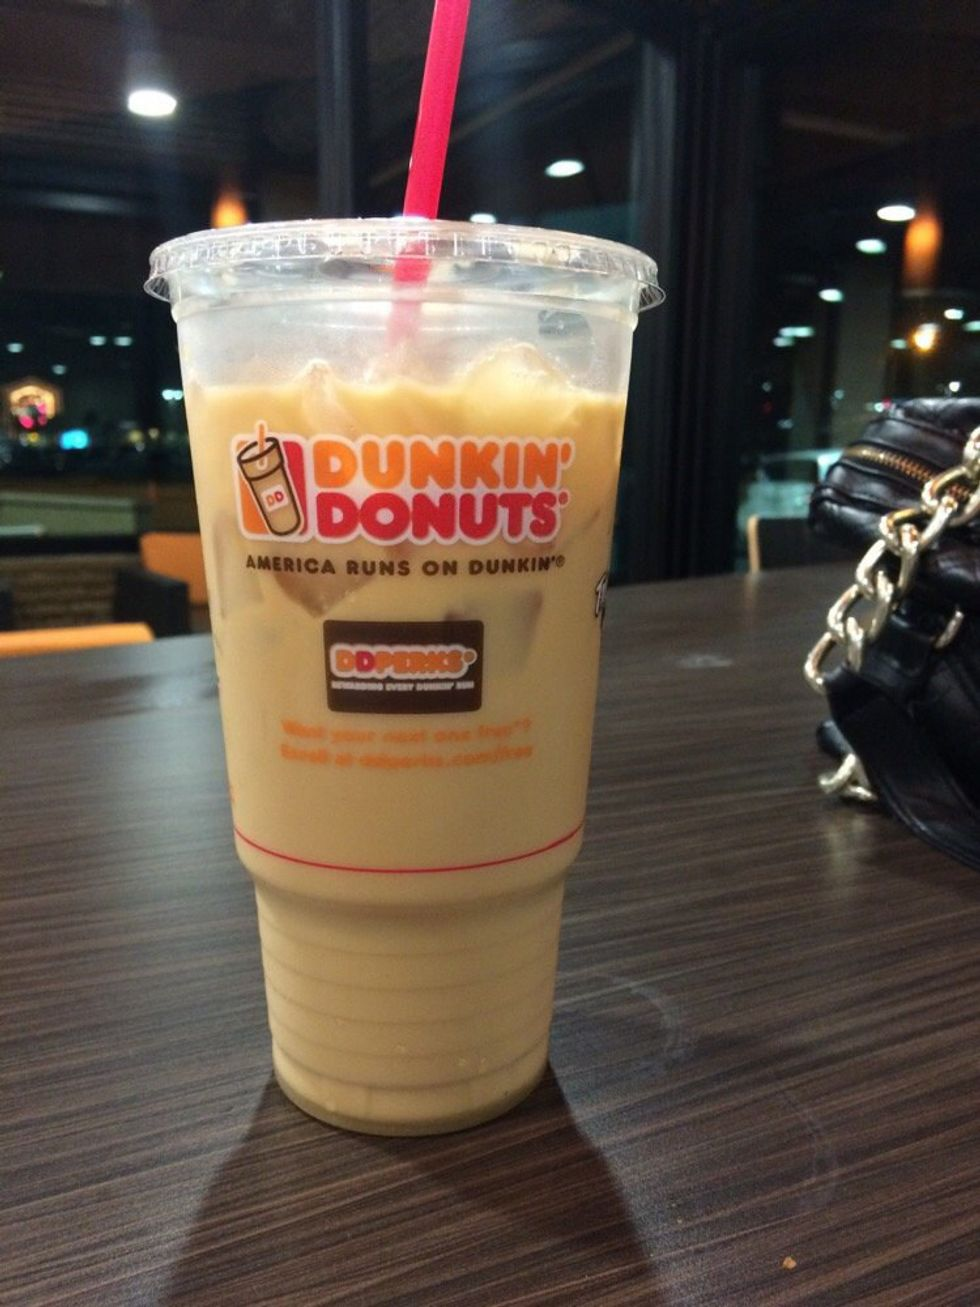 12 Of The Best Menu Items From Dunkin' Donuts